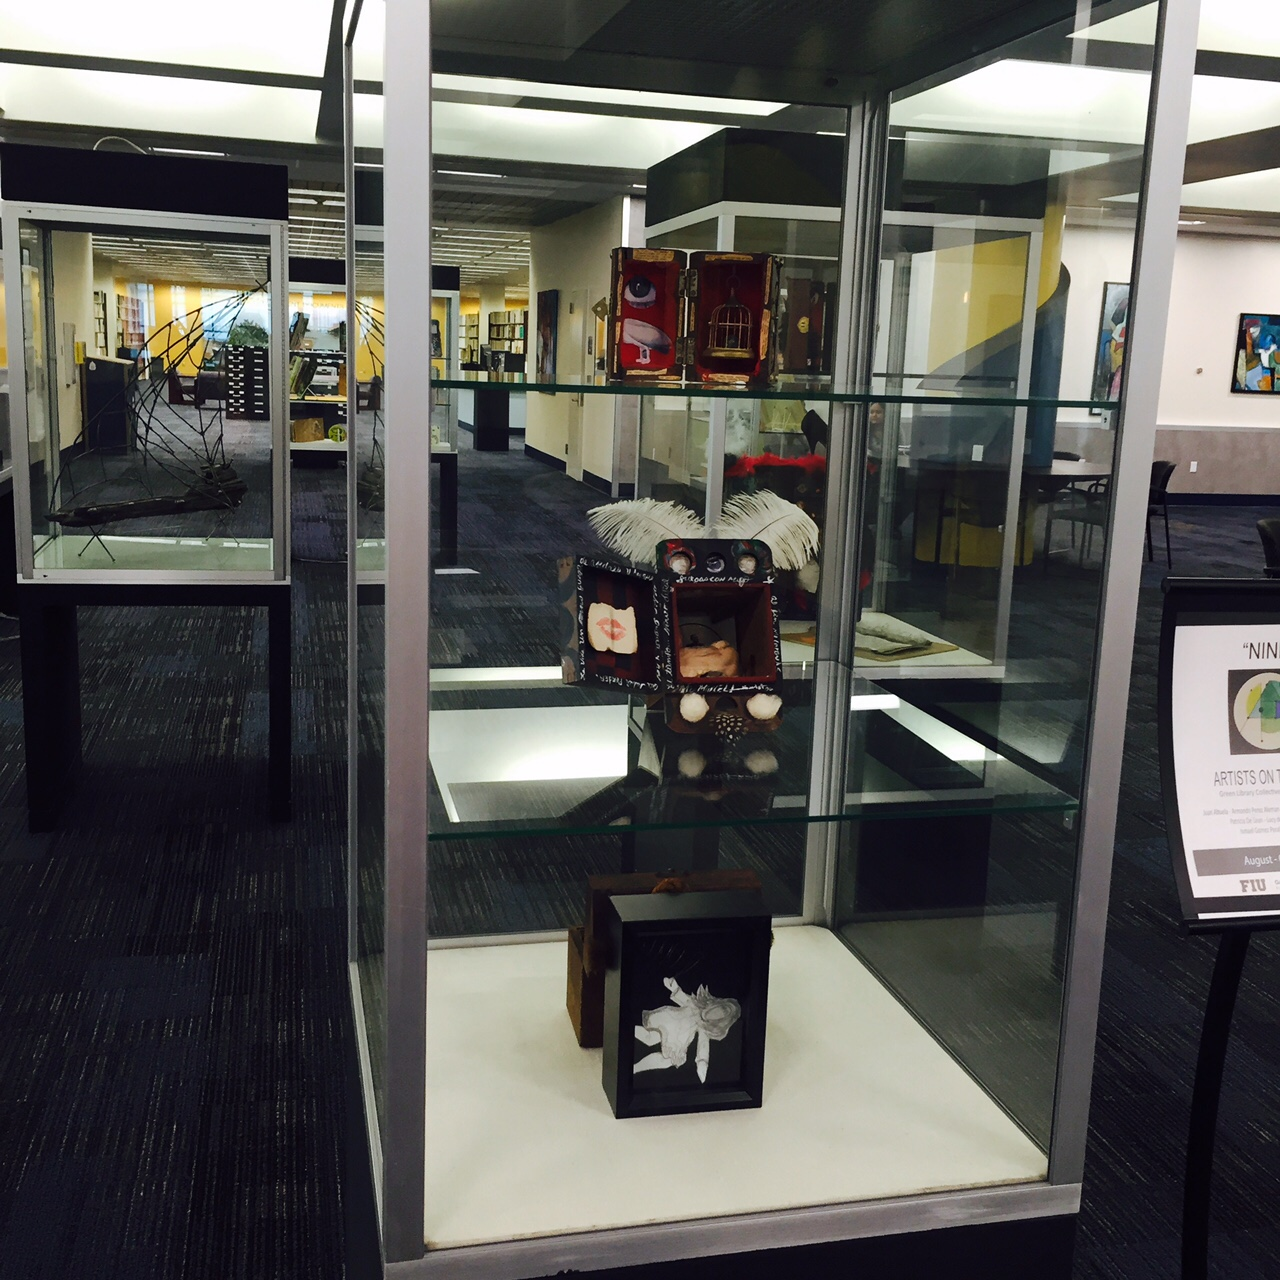 Green Library exhibition features local talent